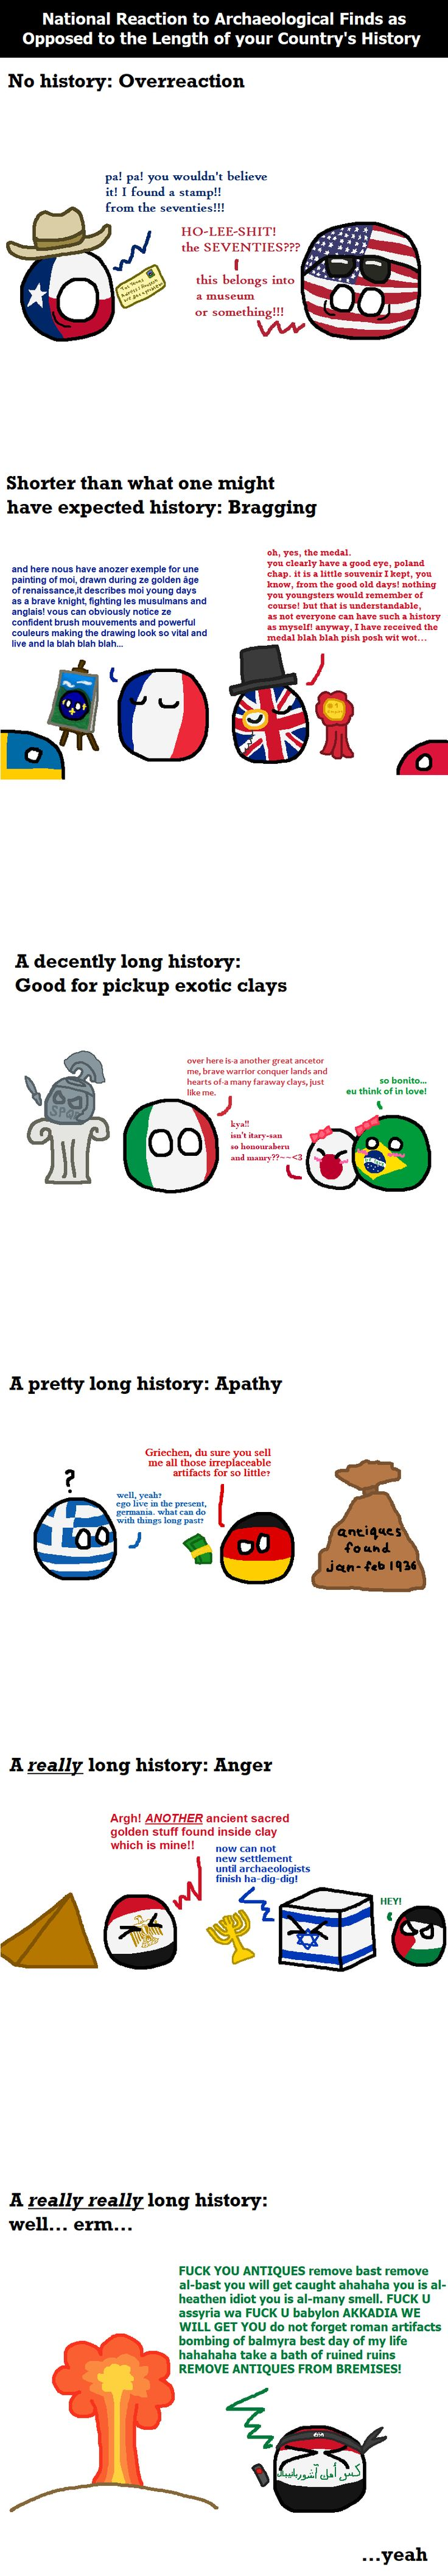 National Reaction to Archaeological Finds as Opposed to the Length of your Countrys History | Polandballs Countryballs